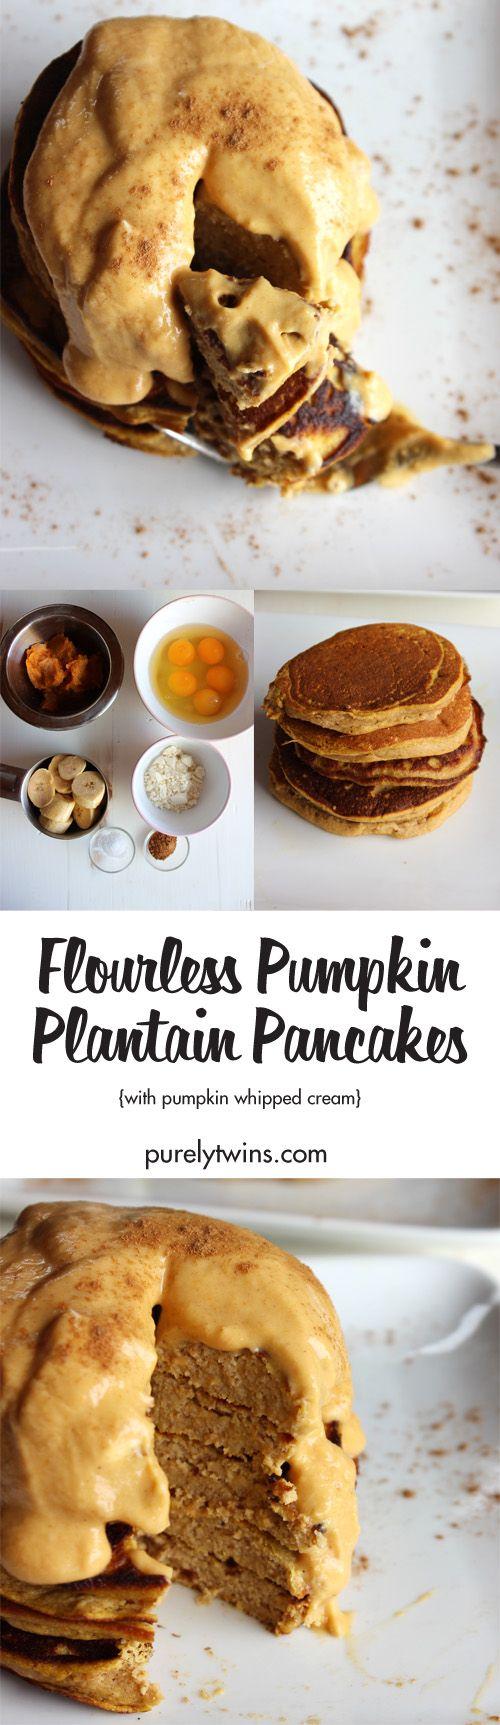 Healthy simple pumpkin plantain pancakes: moist, light, and fluffy! Full of pumpkin flavor and with just the right amount of spice! A cozy fall breakfast. Made with pumpkin puree, plantains, and eggs these waffles are moist, fluffy and ready to be topped with your 4 ingredient pumpkin whipped cream. A gluten-free grain-free paleo pancake recipe.